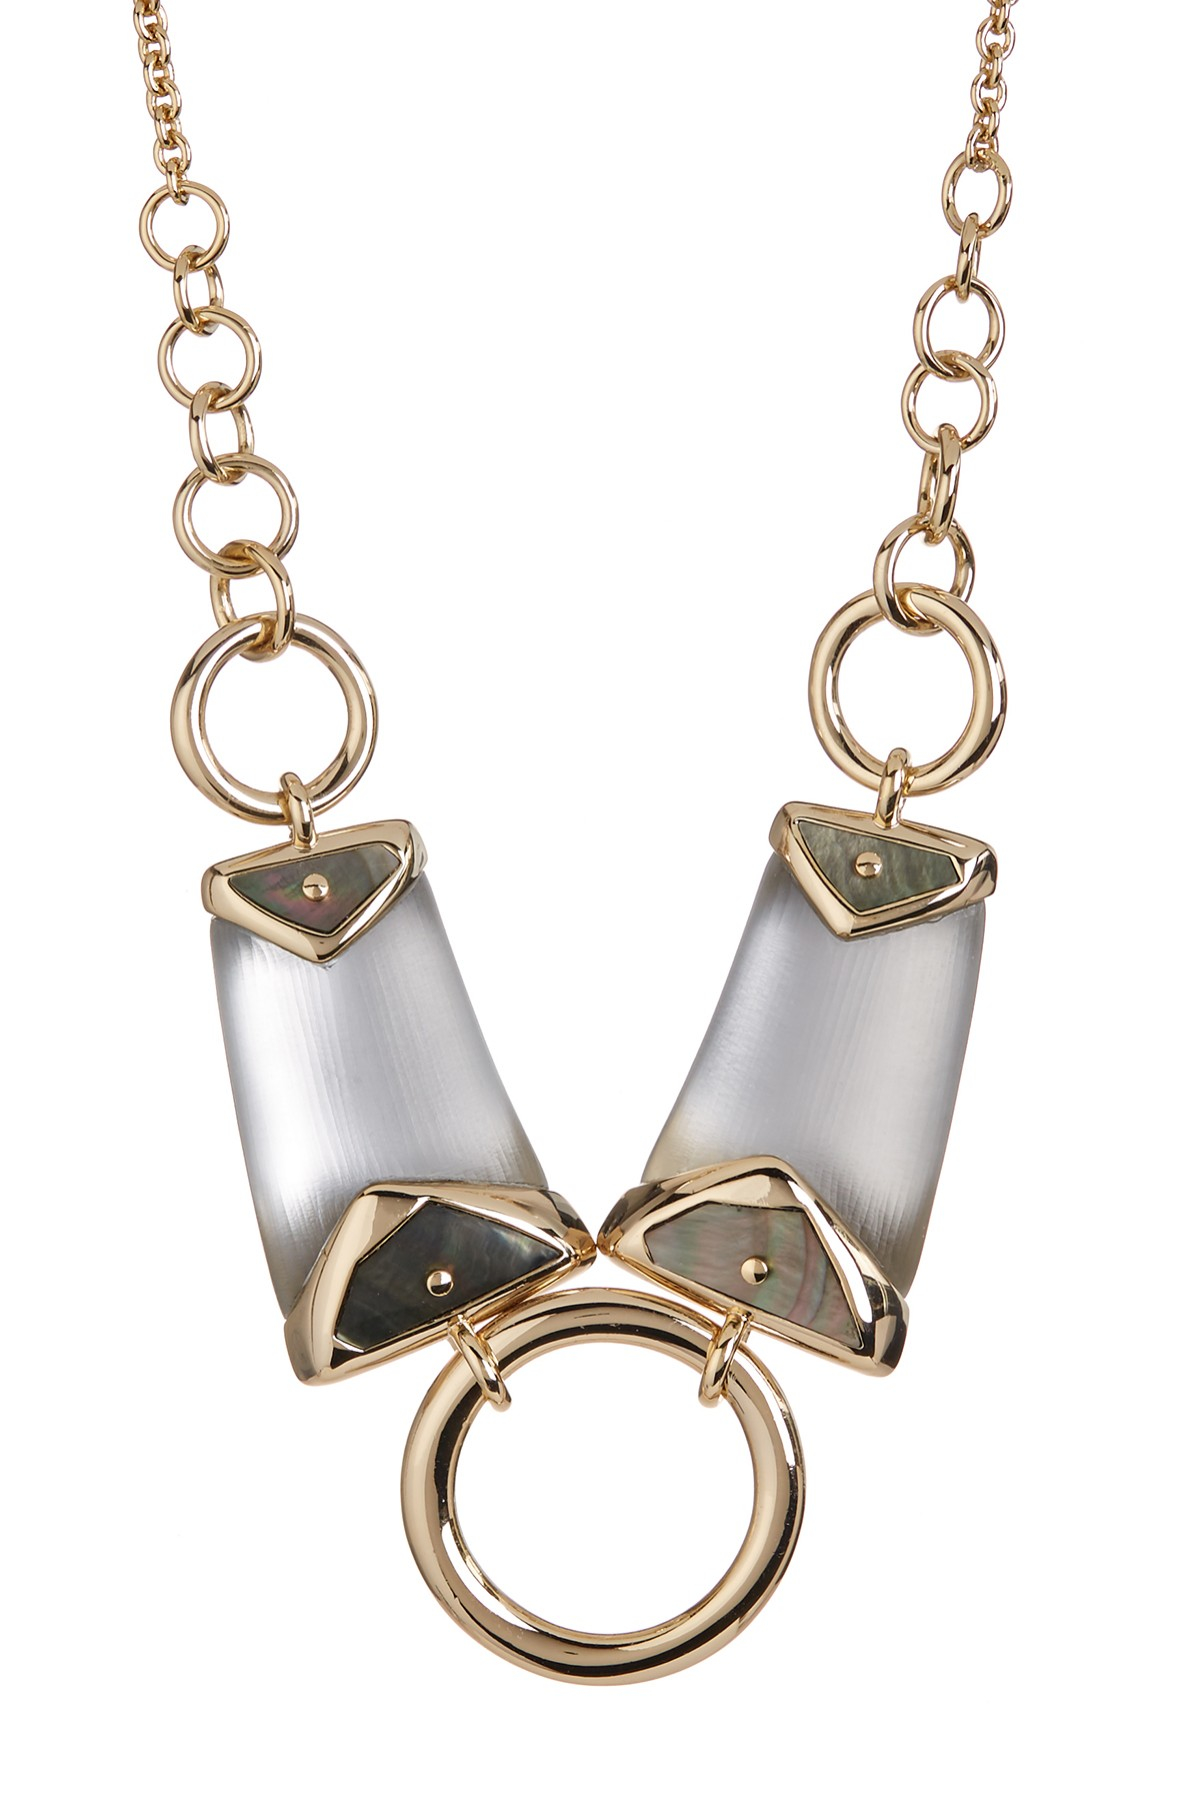 bittar lucite center ring bib necklace in gray